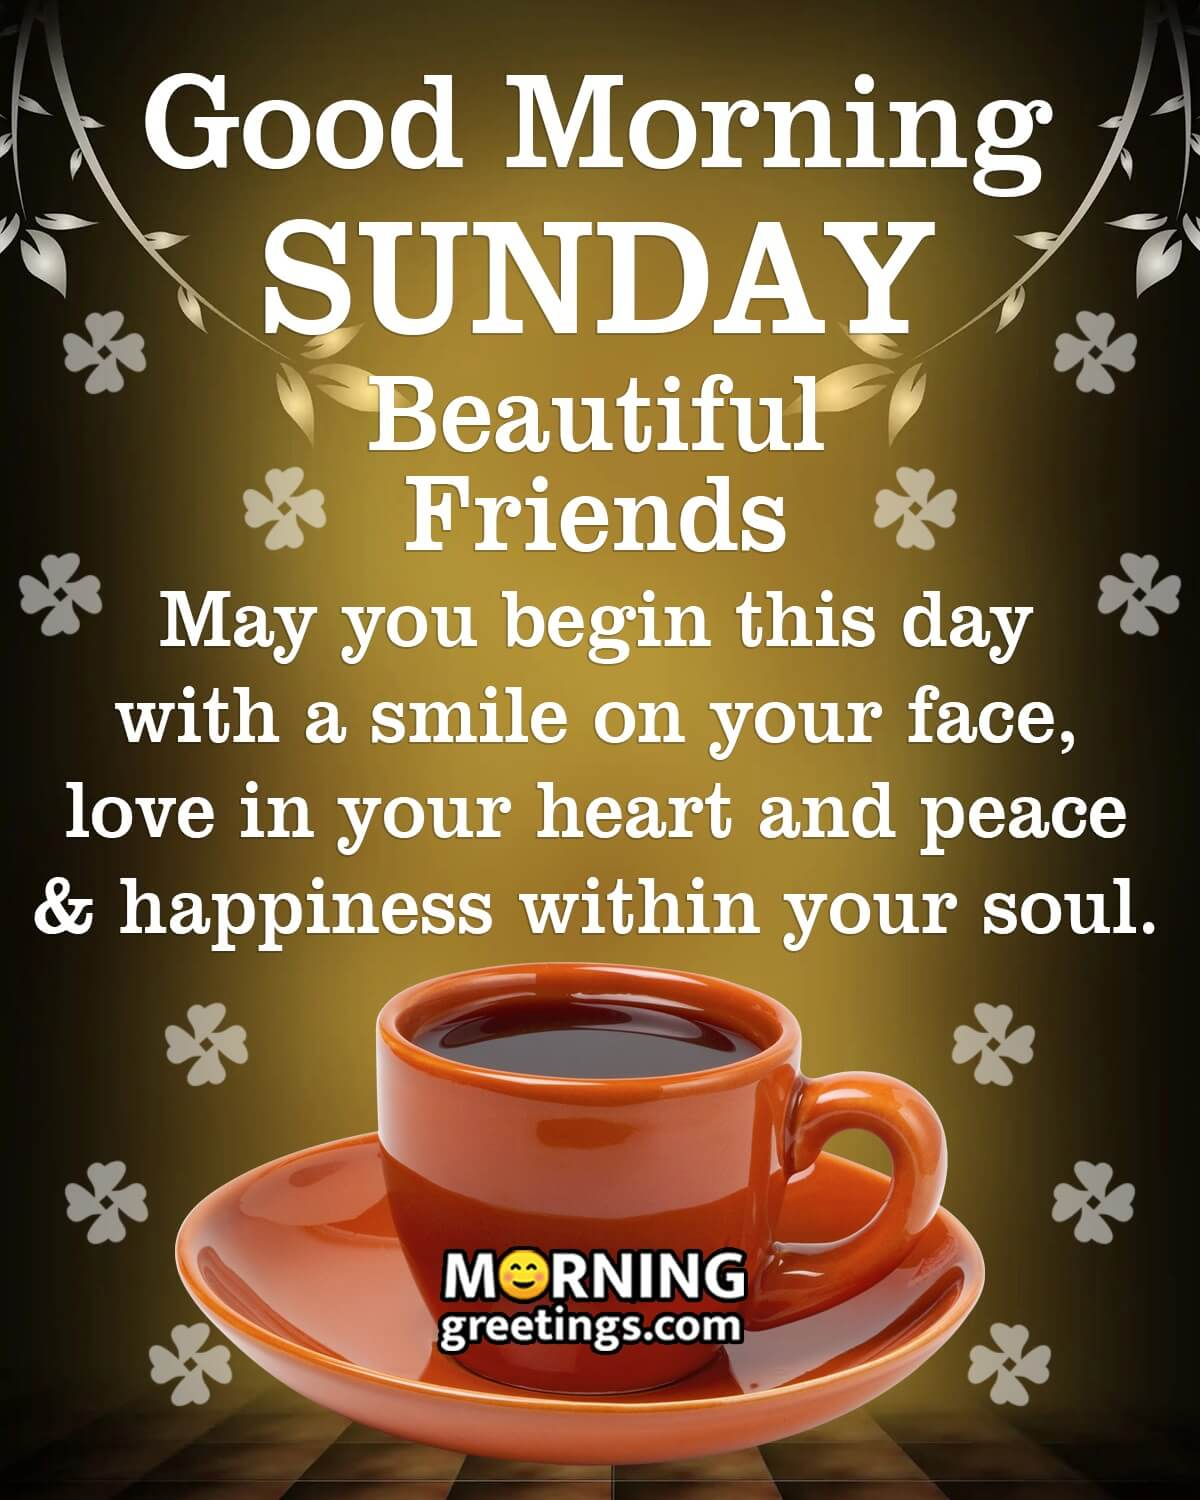 20 Best Sunday Morning Quotes Wishes Pics   Morning Greetings ...